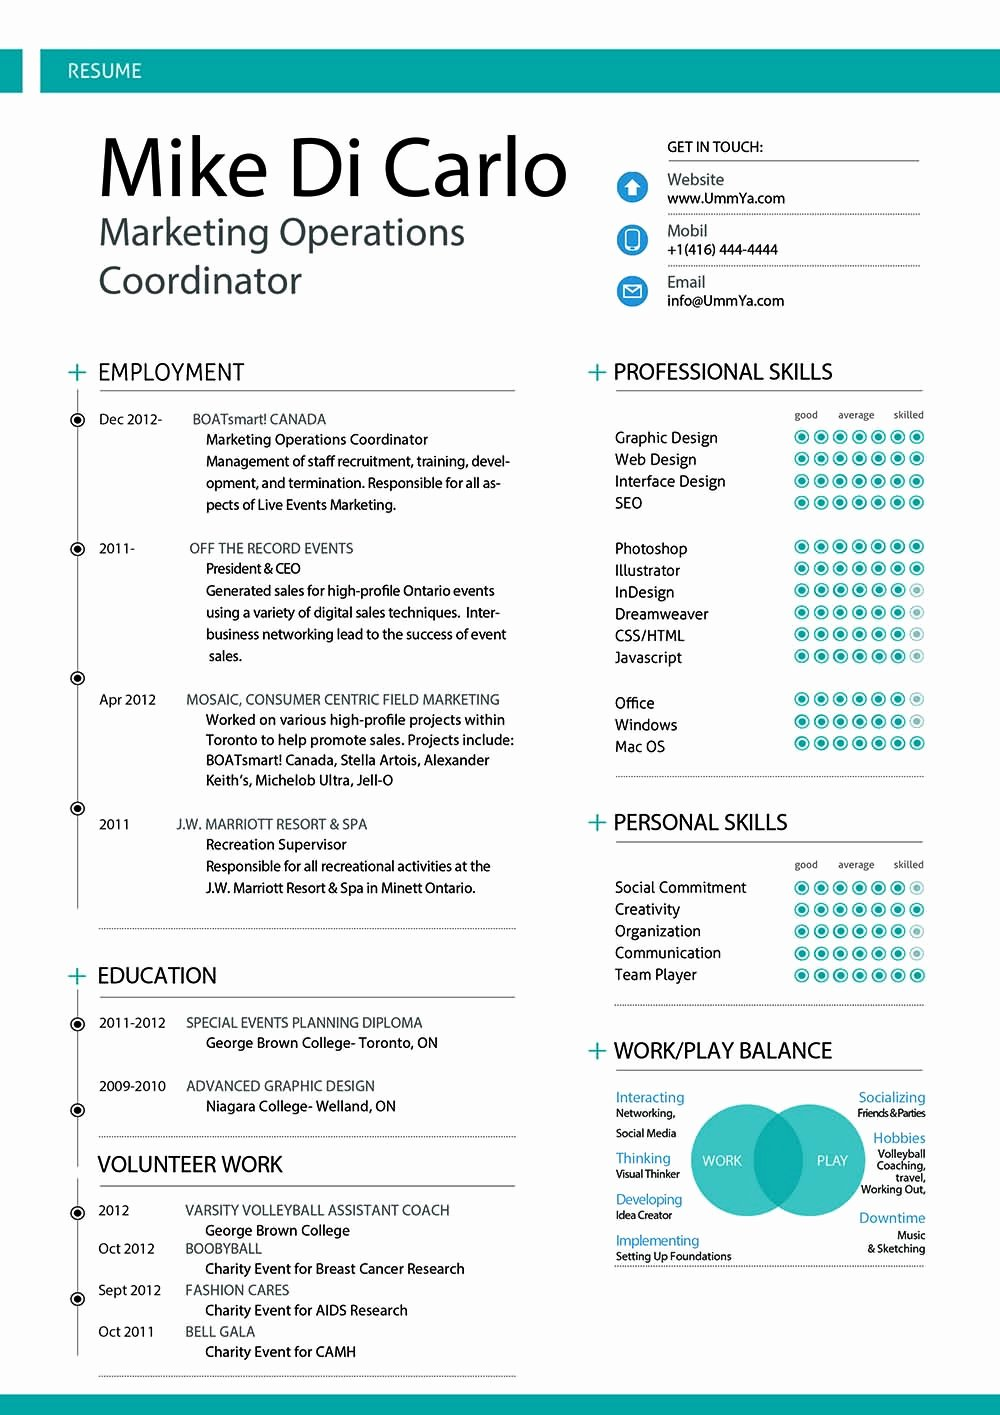 Us-style Resume Beautiful Us Style Resume Cover Letter Samples Cover Letter Samples